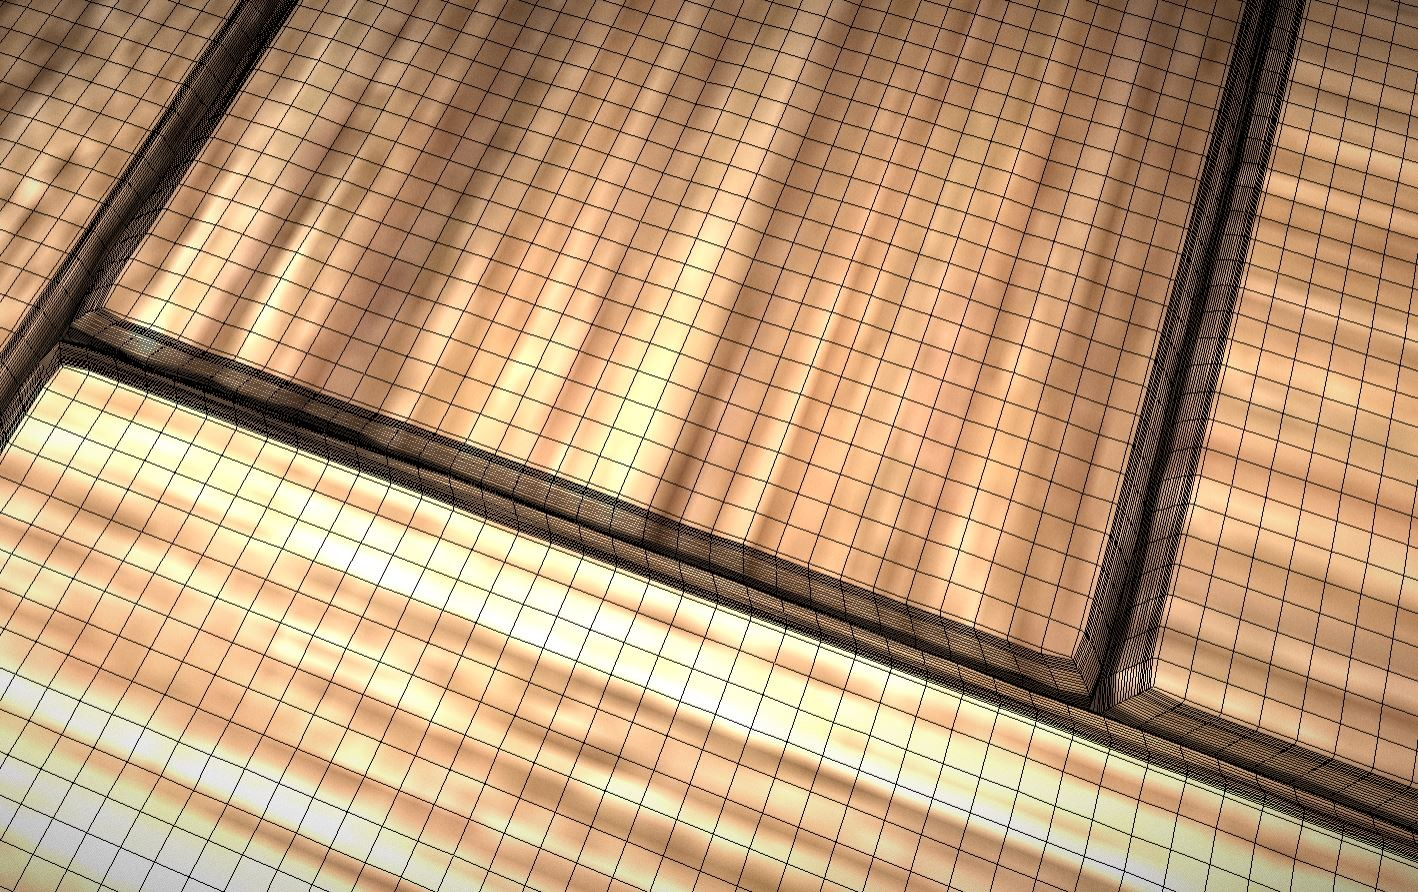 Parquet Floor (High-Poly) For Texture Baking